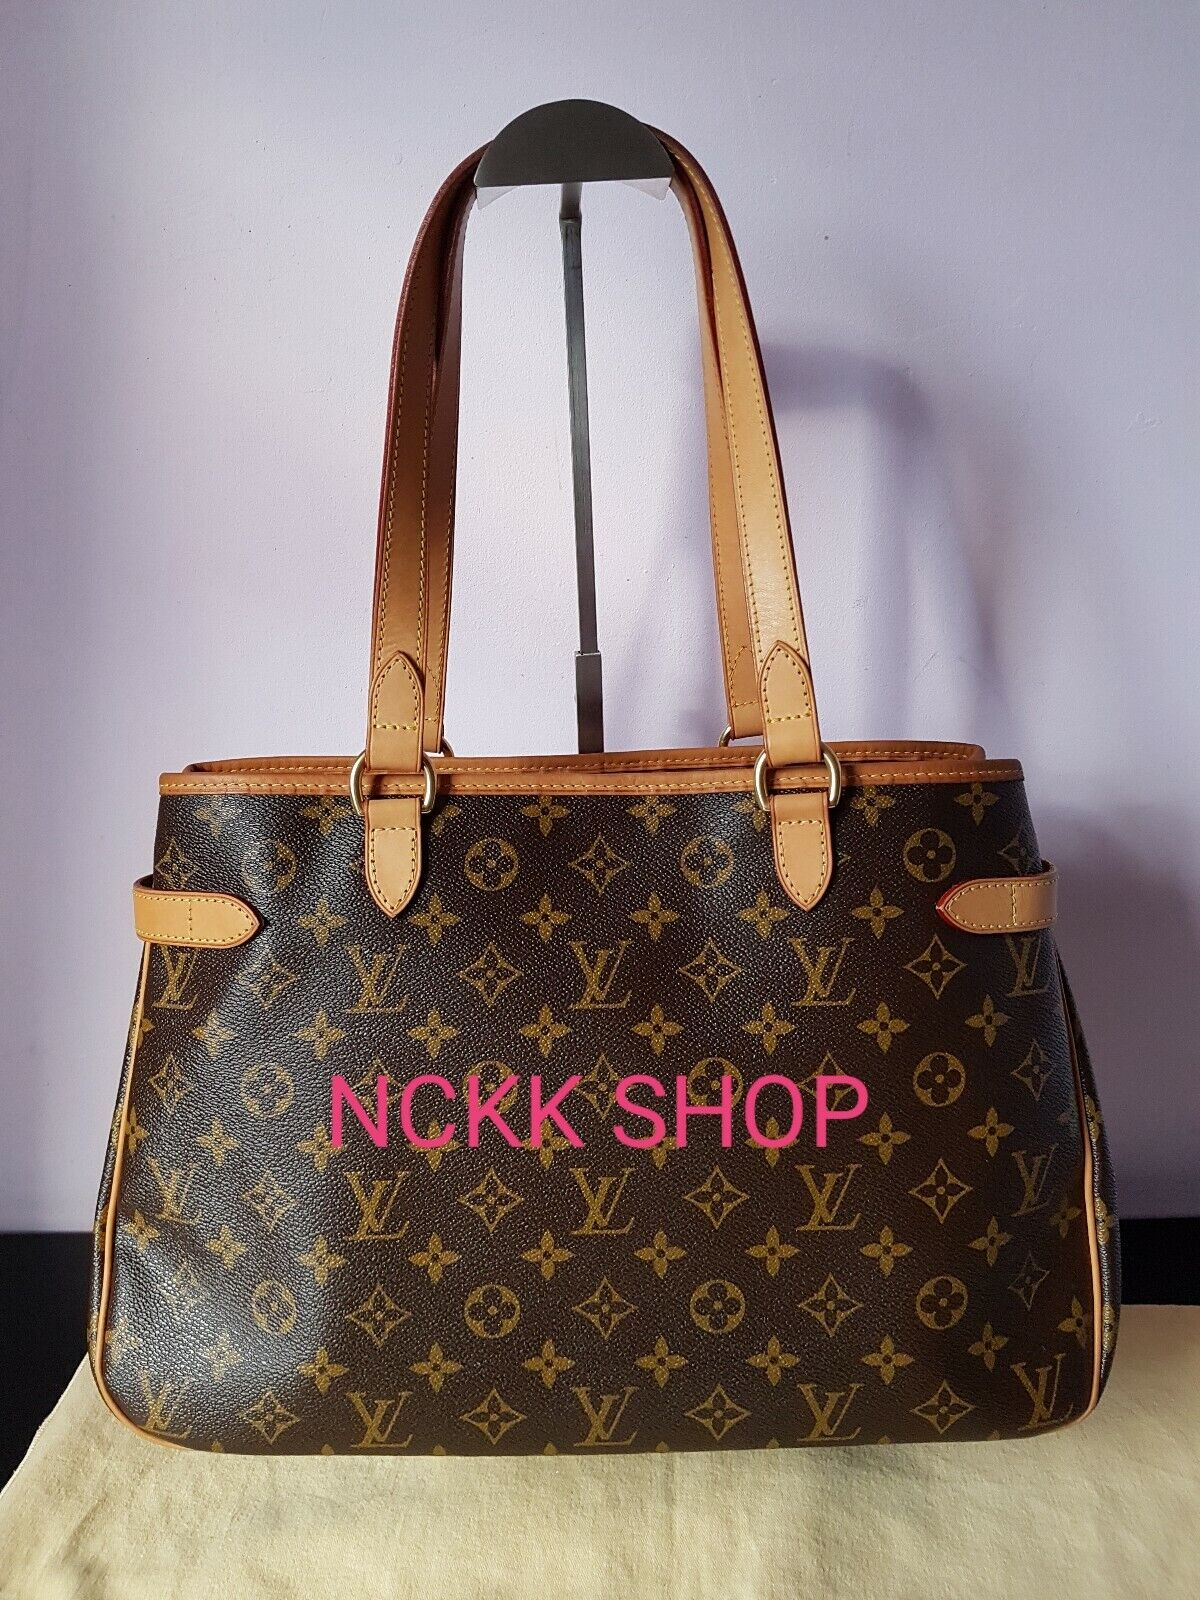 Louis Vuitton Monogram Canvas Batignolles Horizontal Hand Bag m51154 - 825.09,Kaufpreis 825,09,datum 01.07.2020 22:12:38,Website rebelle.com